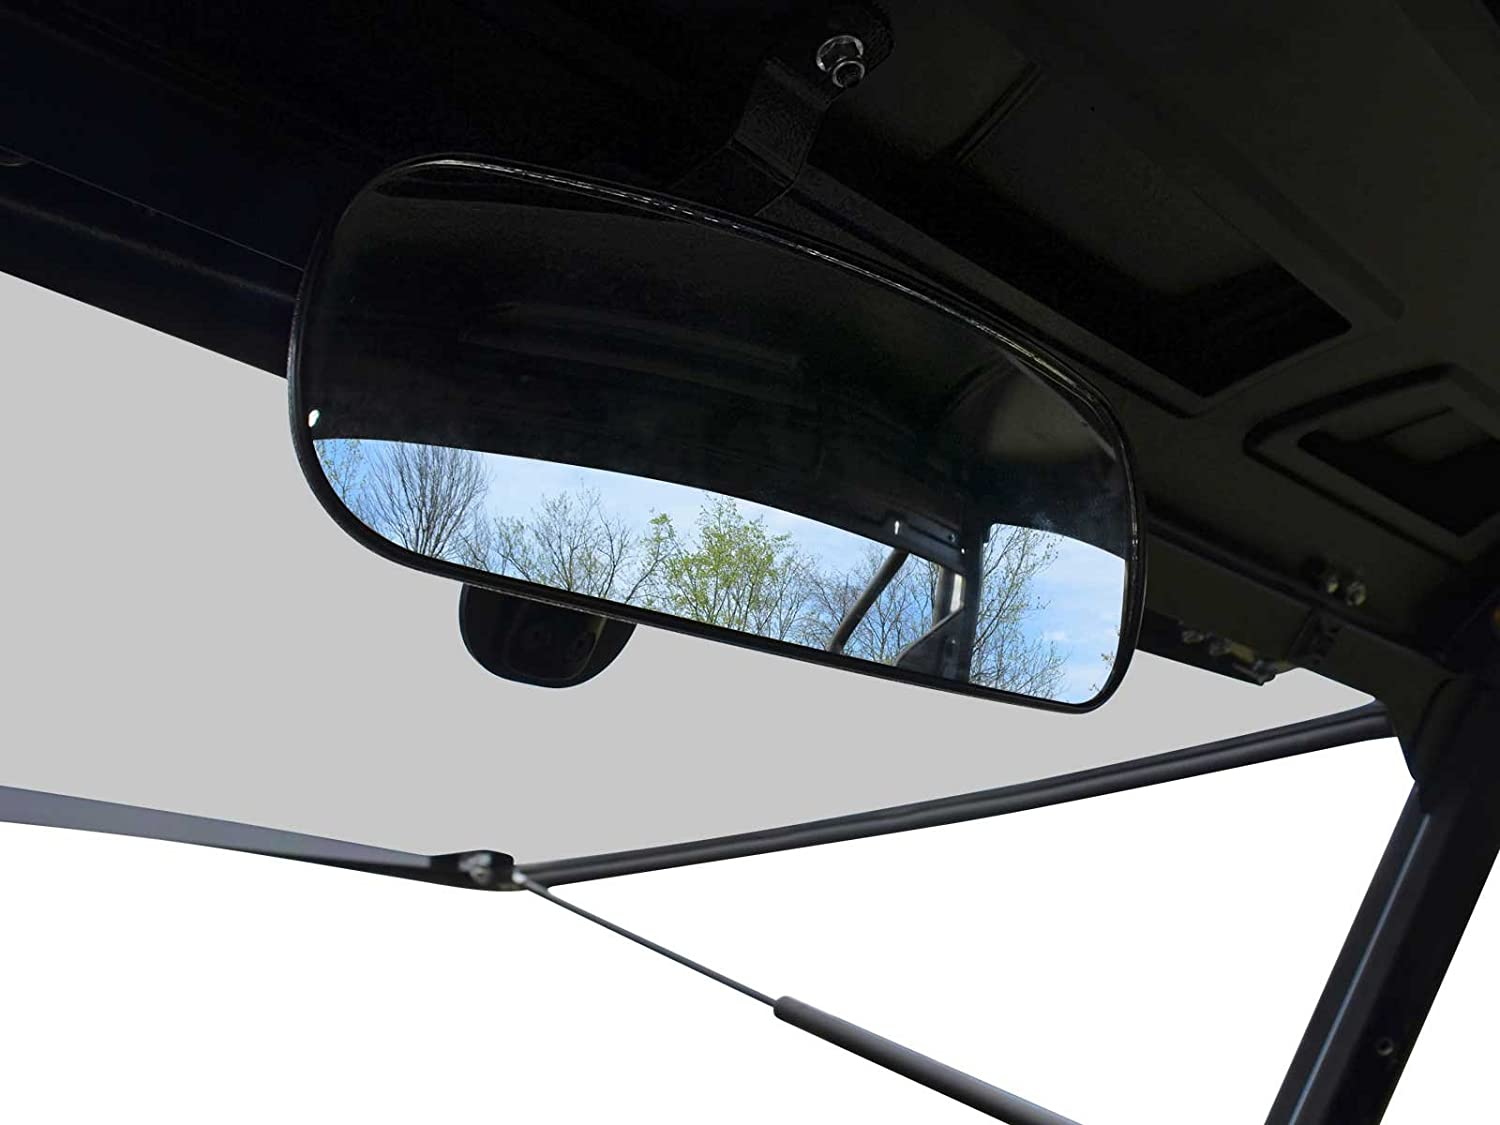 SuperATV Adjustable Rear View Mirror for Polaris Ranger 570/900 / 1000 / CREW (See Fitment for Compatible Models and Years) - Easy to Install! SuperATV.com